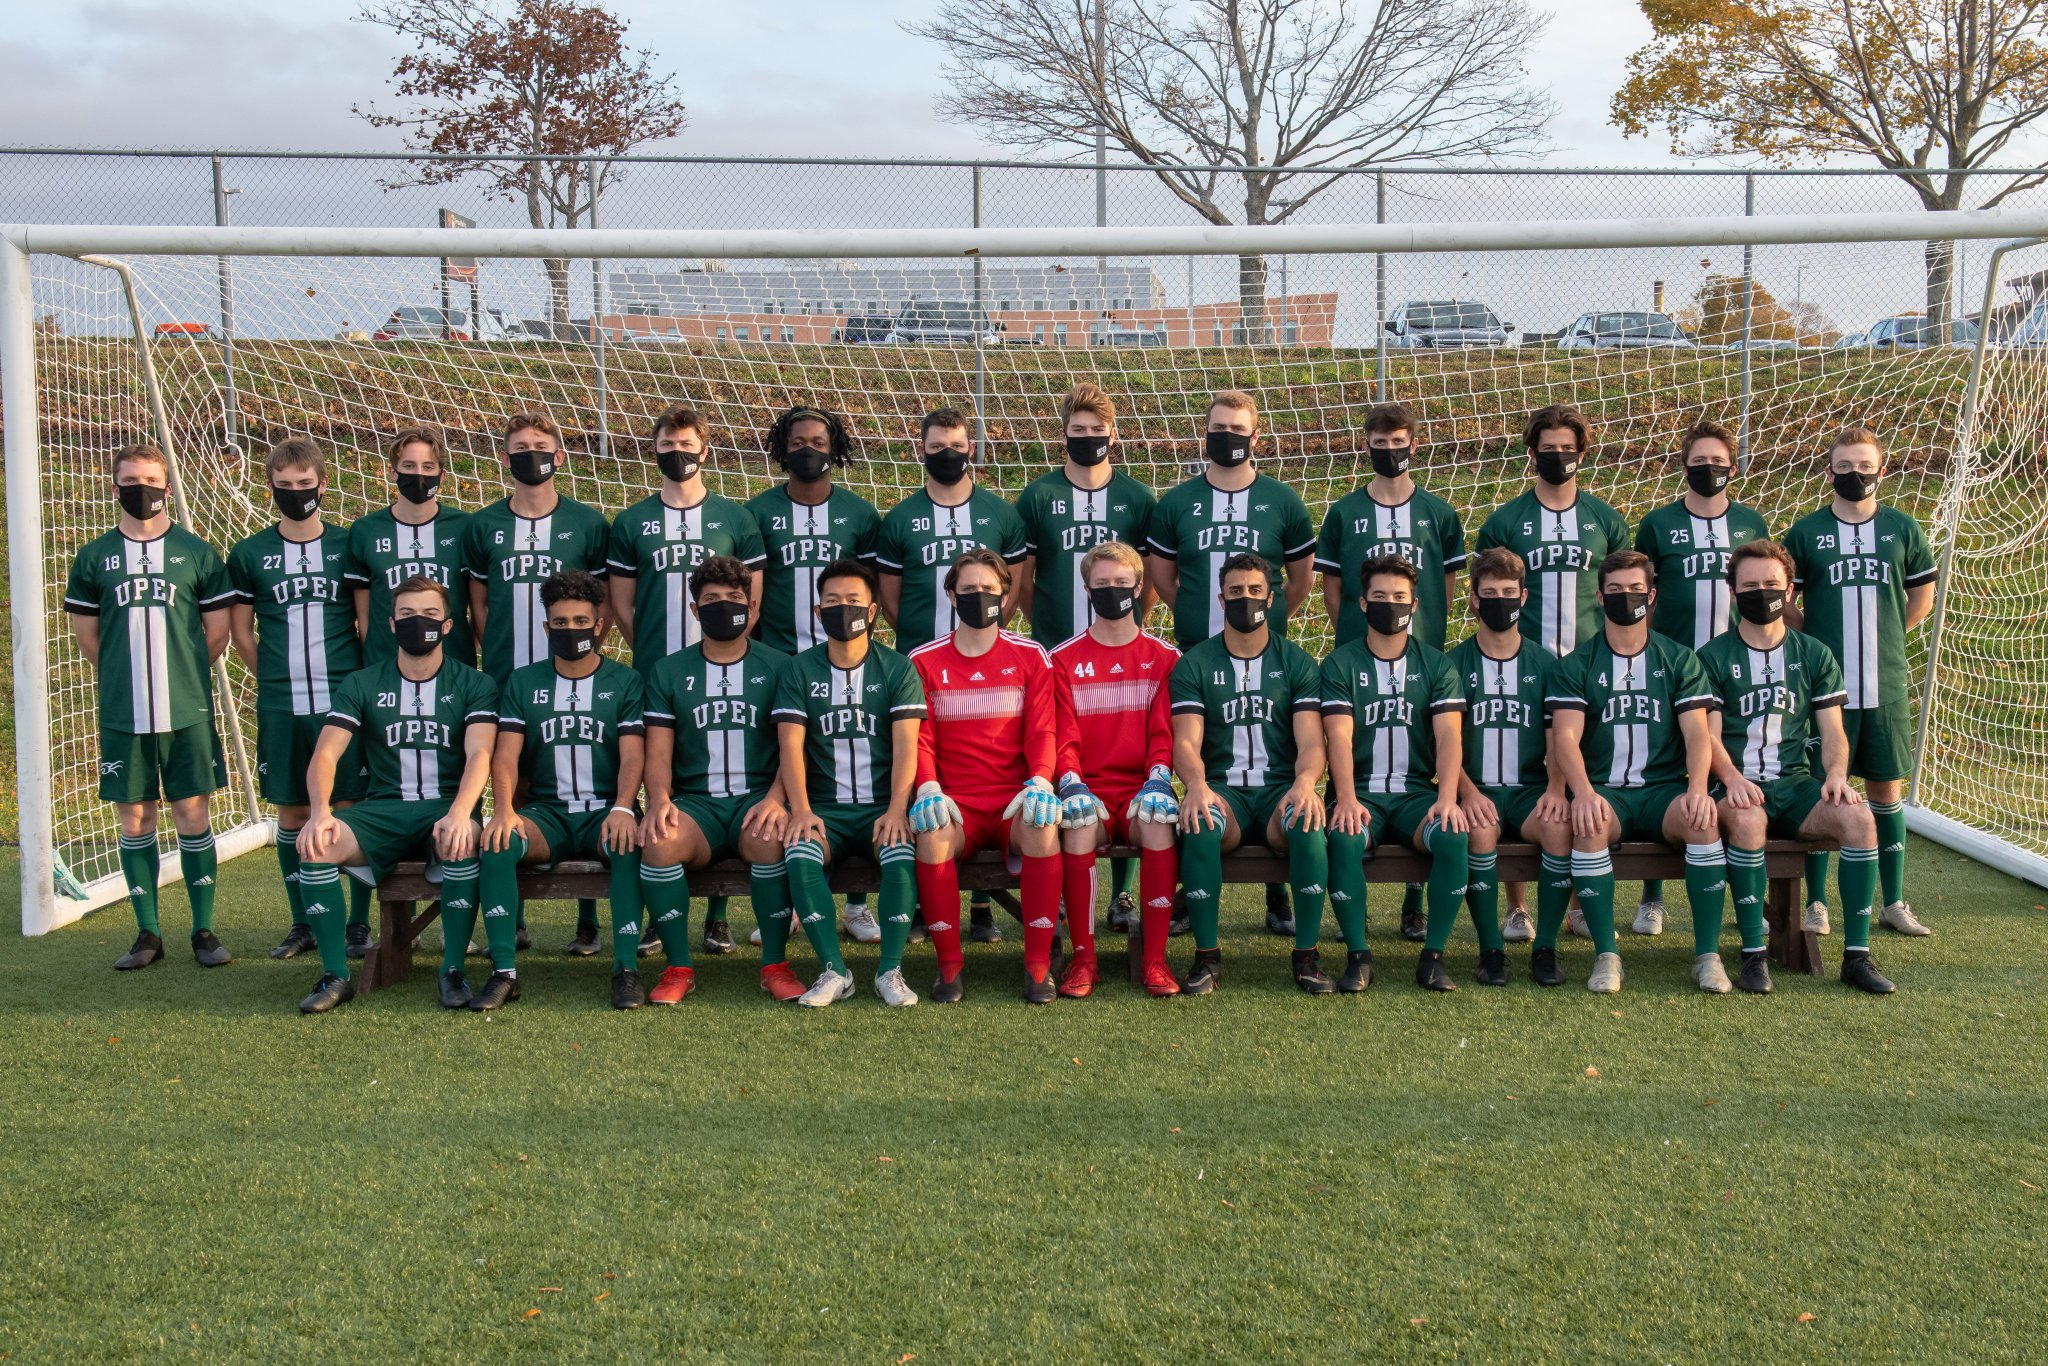 """UPEI Men's Soccer on Twitter: """"⚽️📸 MEN'S SOCCER 📸⚽️ Making the most out  of a COVID-19 year... Check out the new pics!😷 #GoPanthersGo   #Soccer    #PlayOn… https://t.co/n5KhwPZEiX"""""""